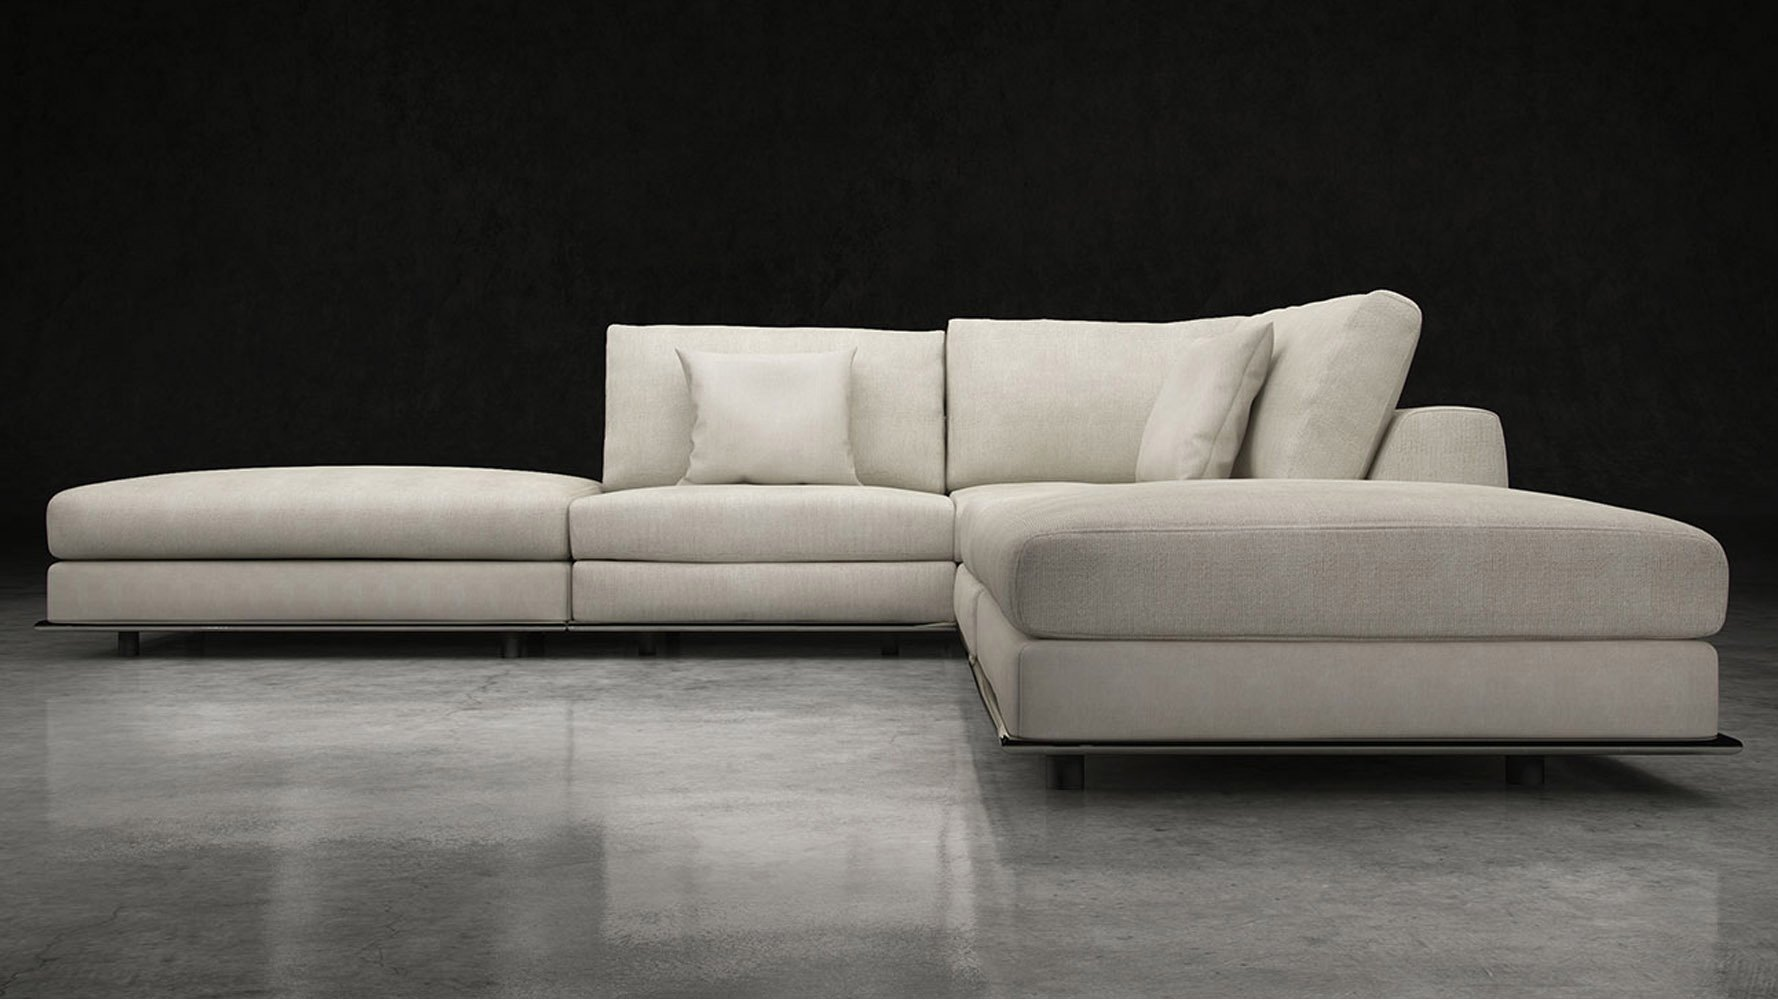 footrest shape recliner italian corner l electric and p unique j natuzzi jn sofa moines iowa des sectional m with leather lshape modern sofas genuine agata